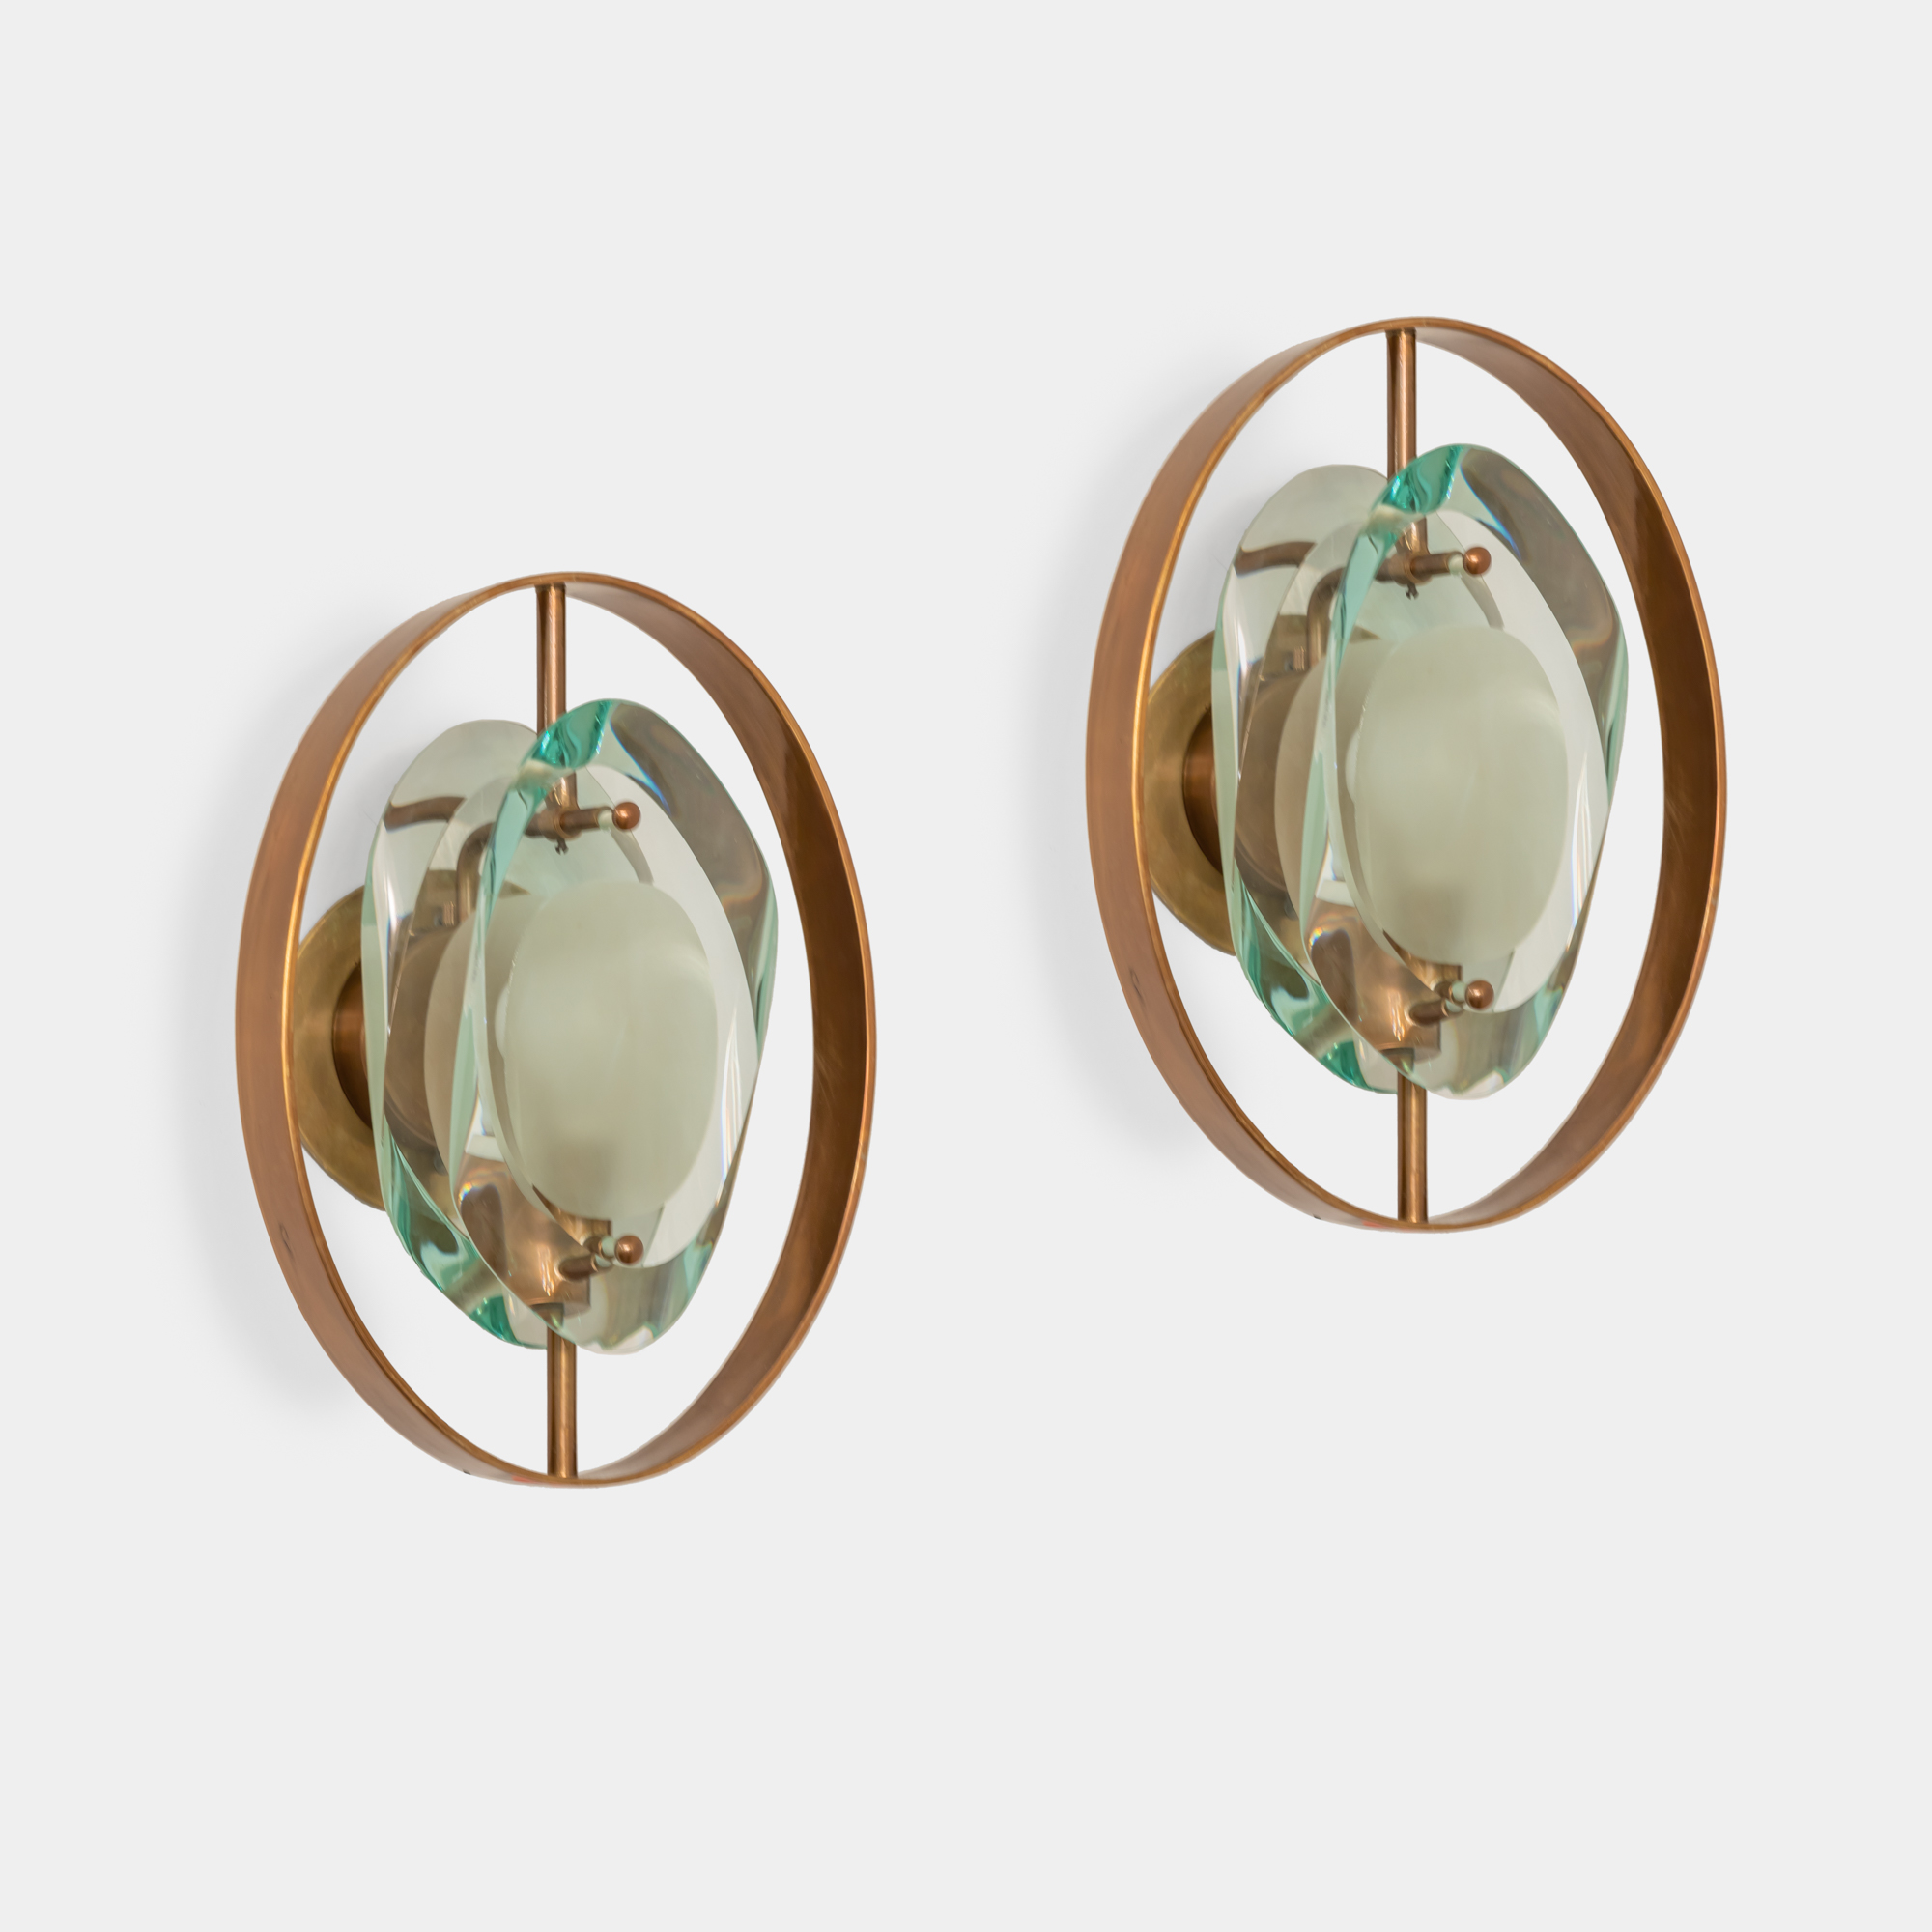 Pair of 'Micro' Sconces Model 2240 by Max Ingrand for Fontana Arte | soyun k.